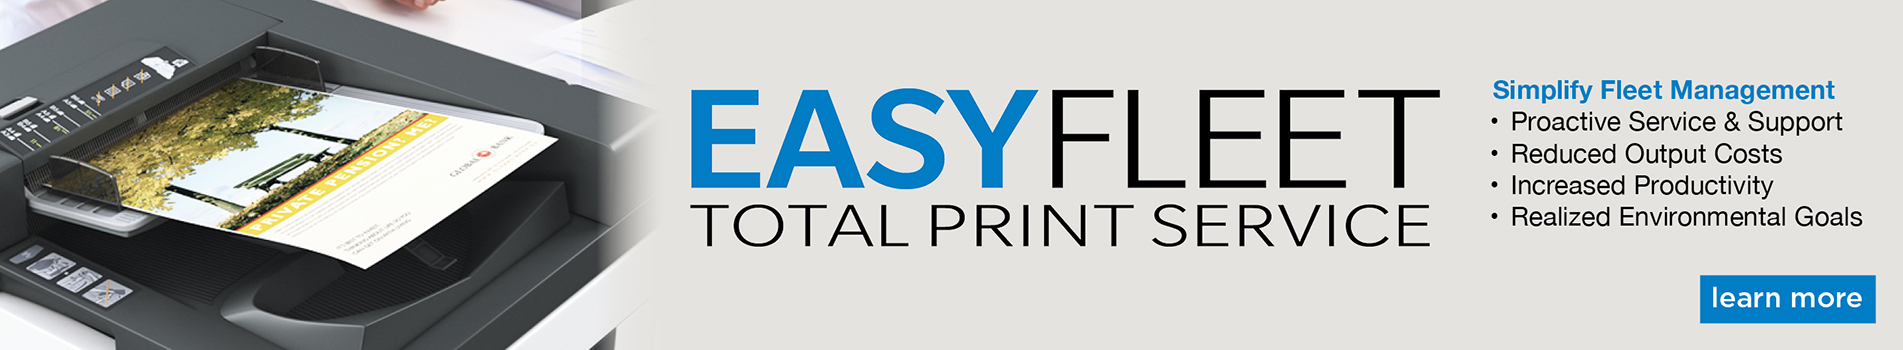 EasyFleet Total Print Services